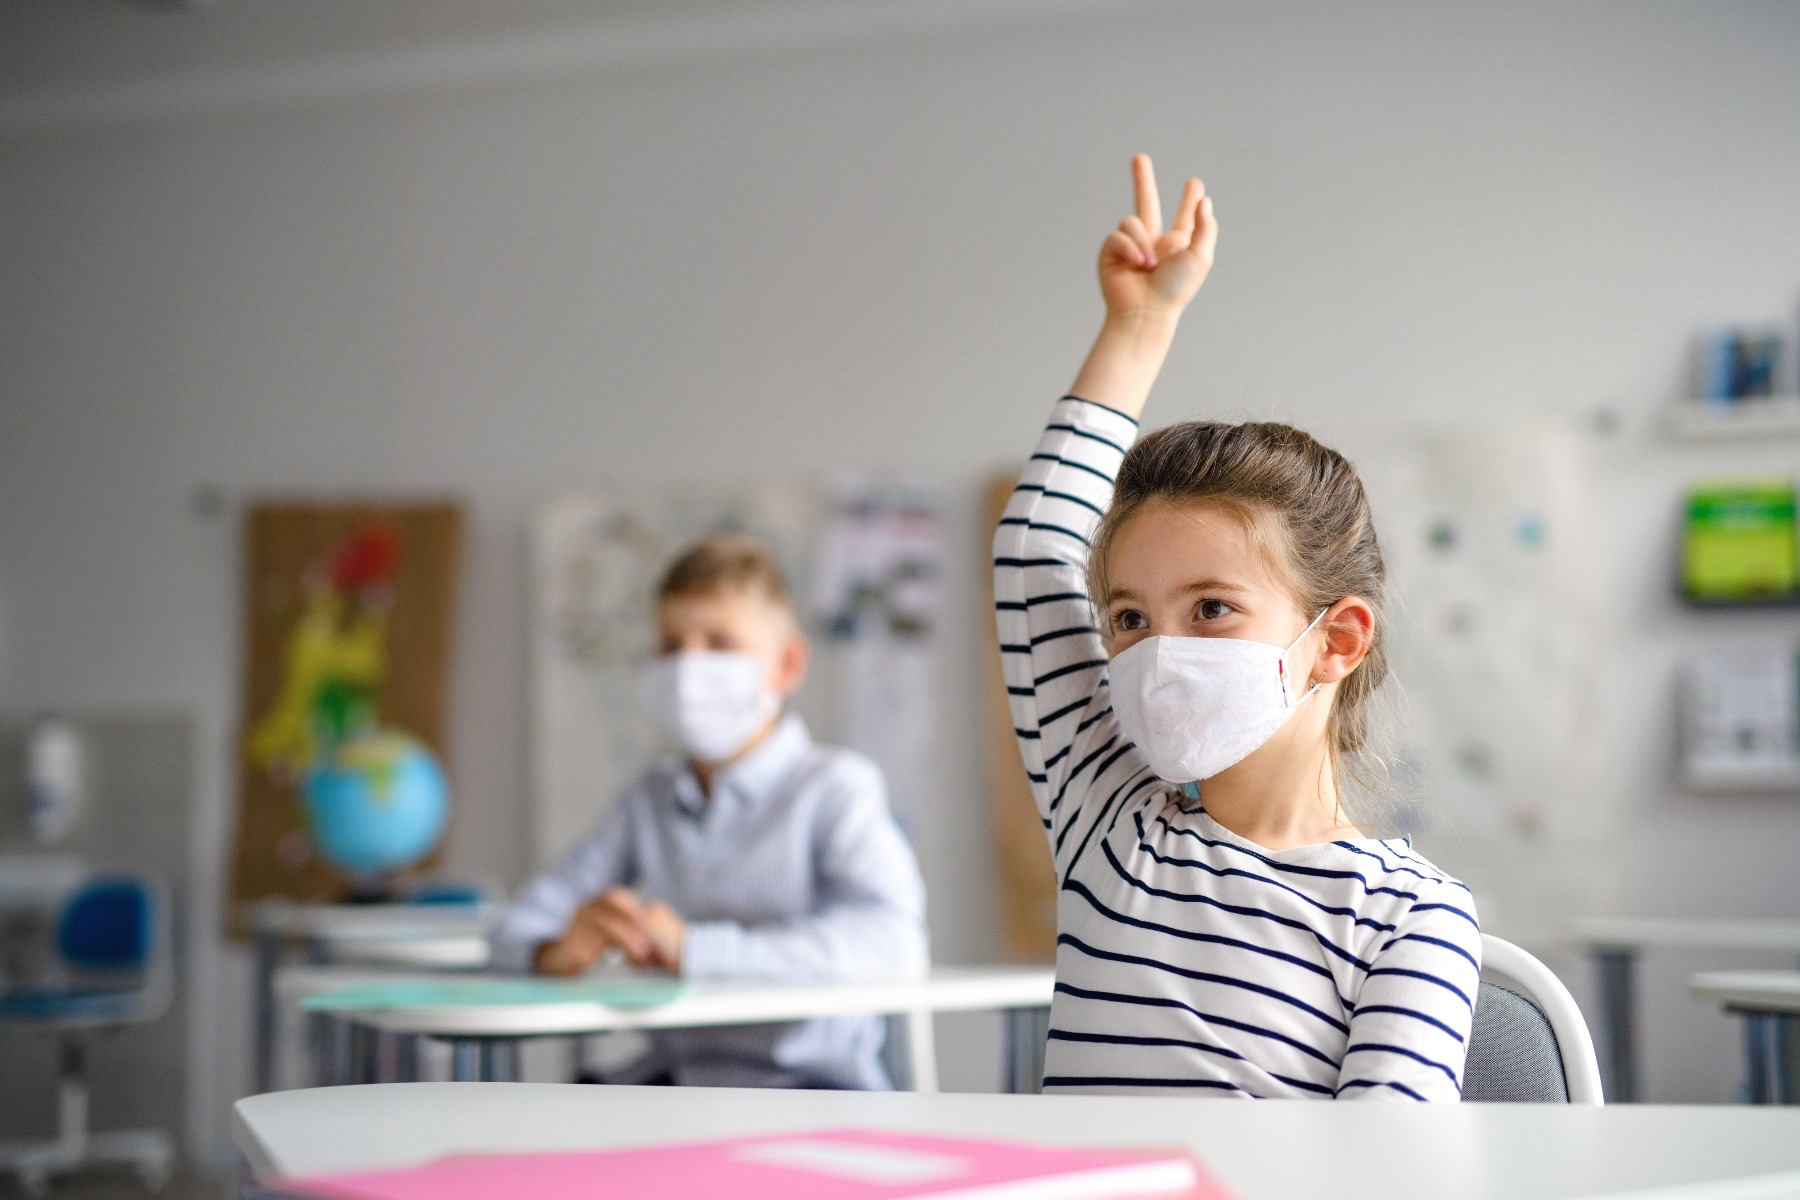 young girl in class raising hand with mask on